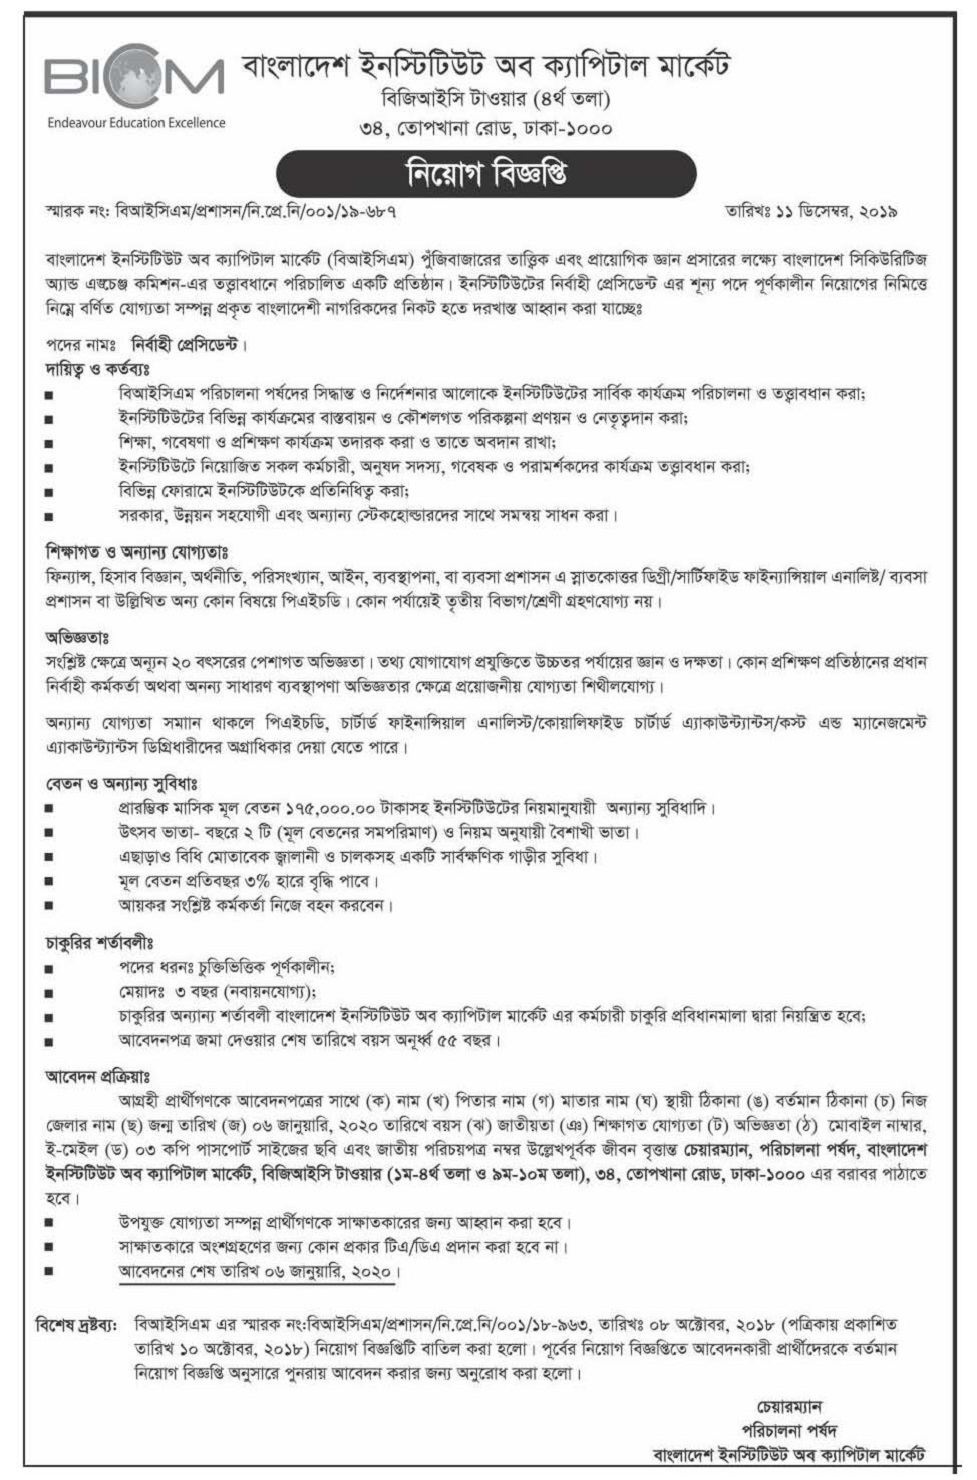 Bangladesh Institute of Capital Market Job Circular 2019